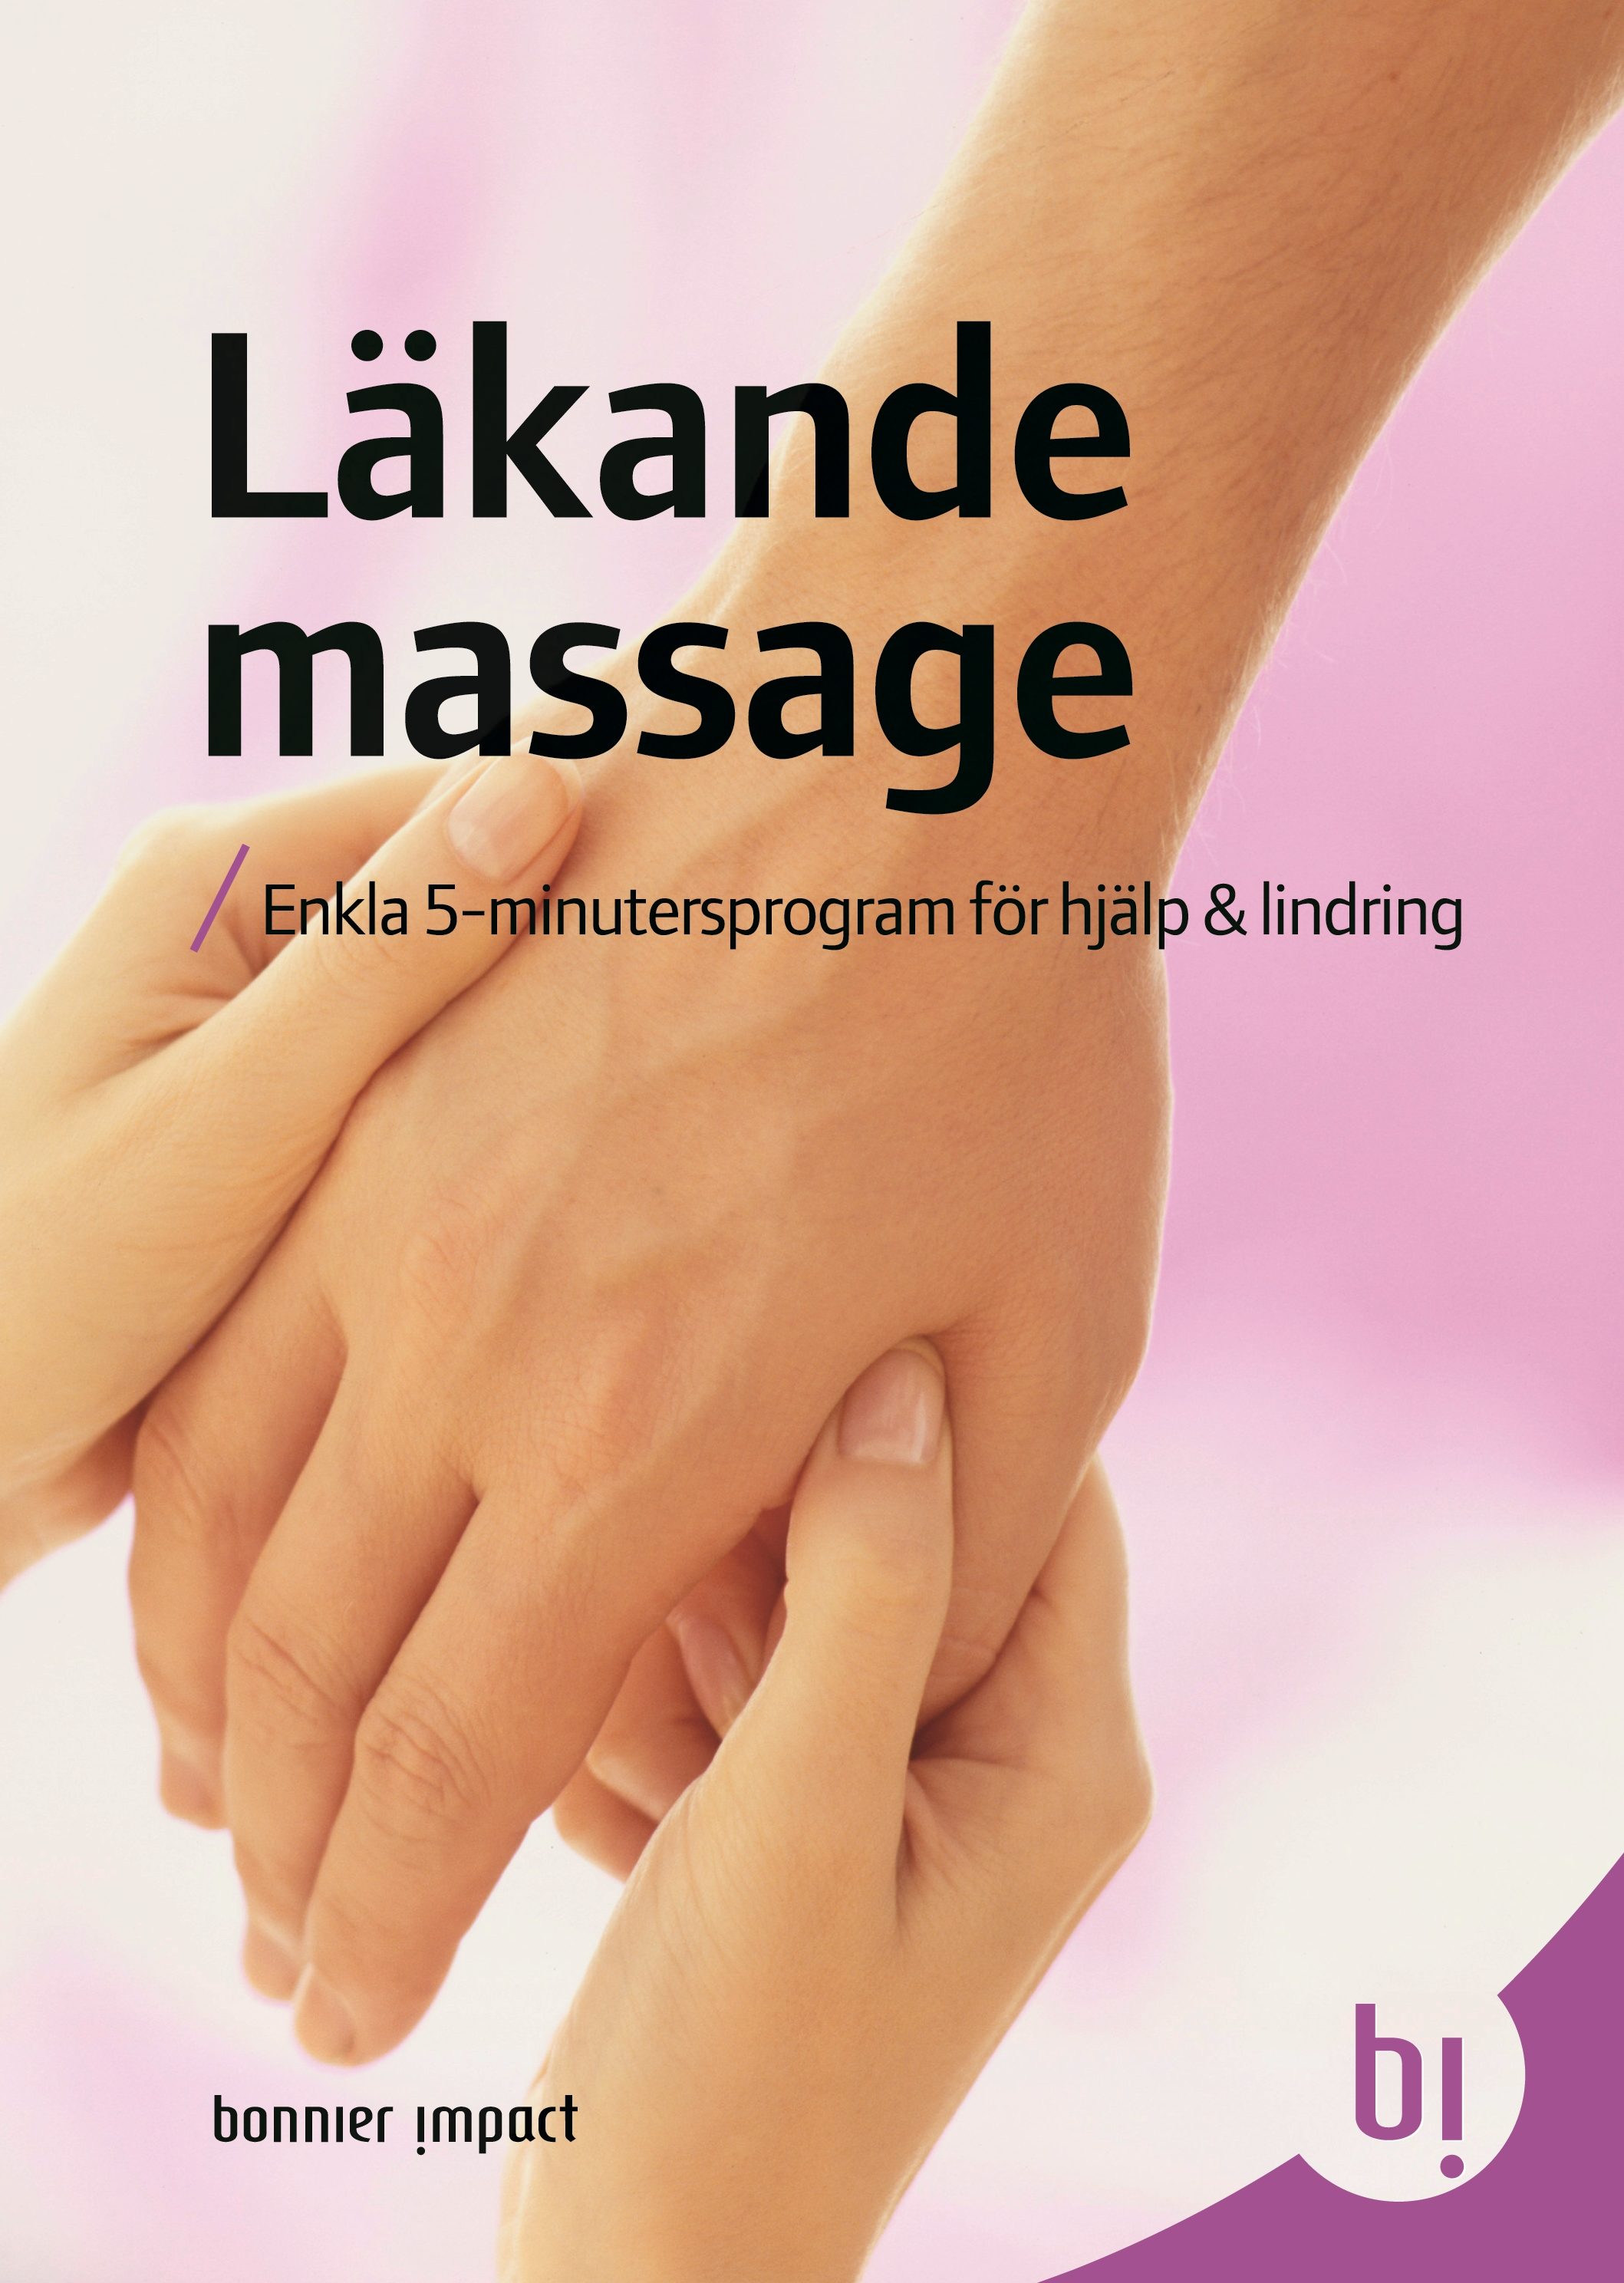 sociala media massage vattensporter